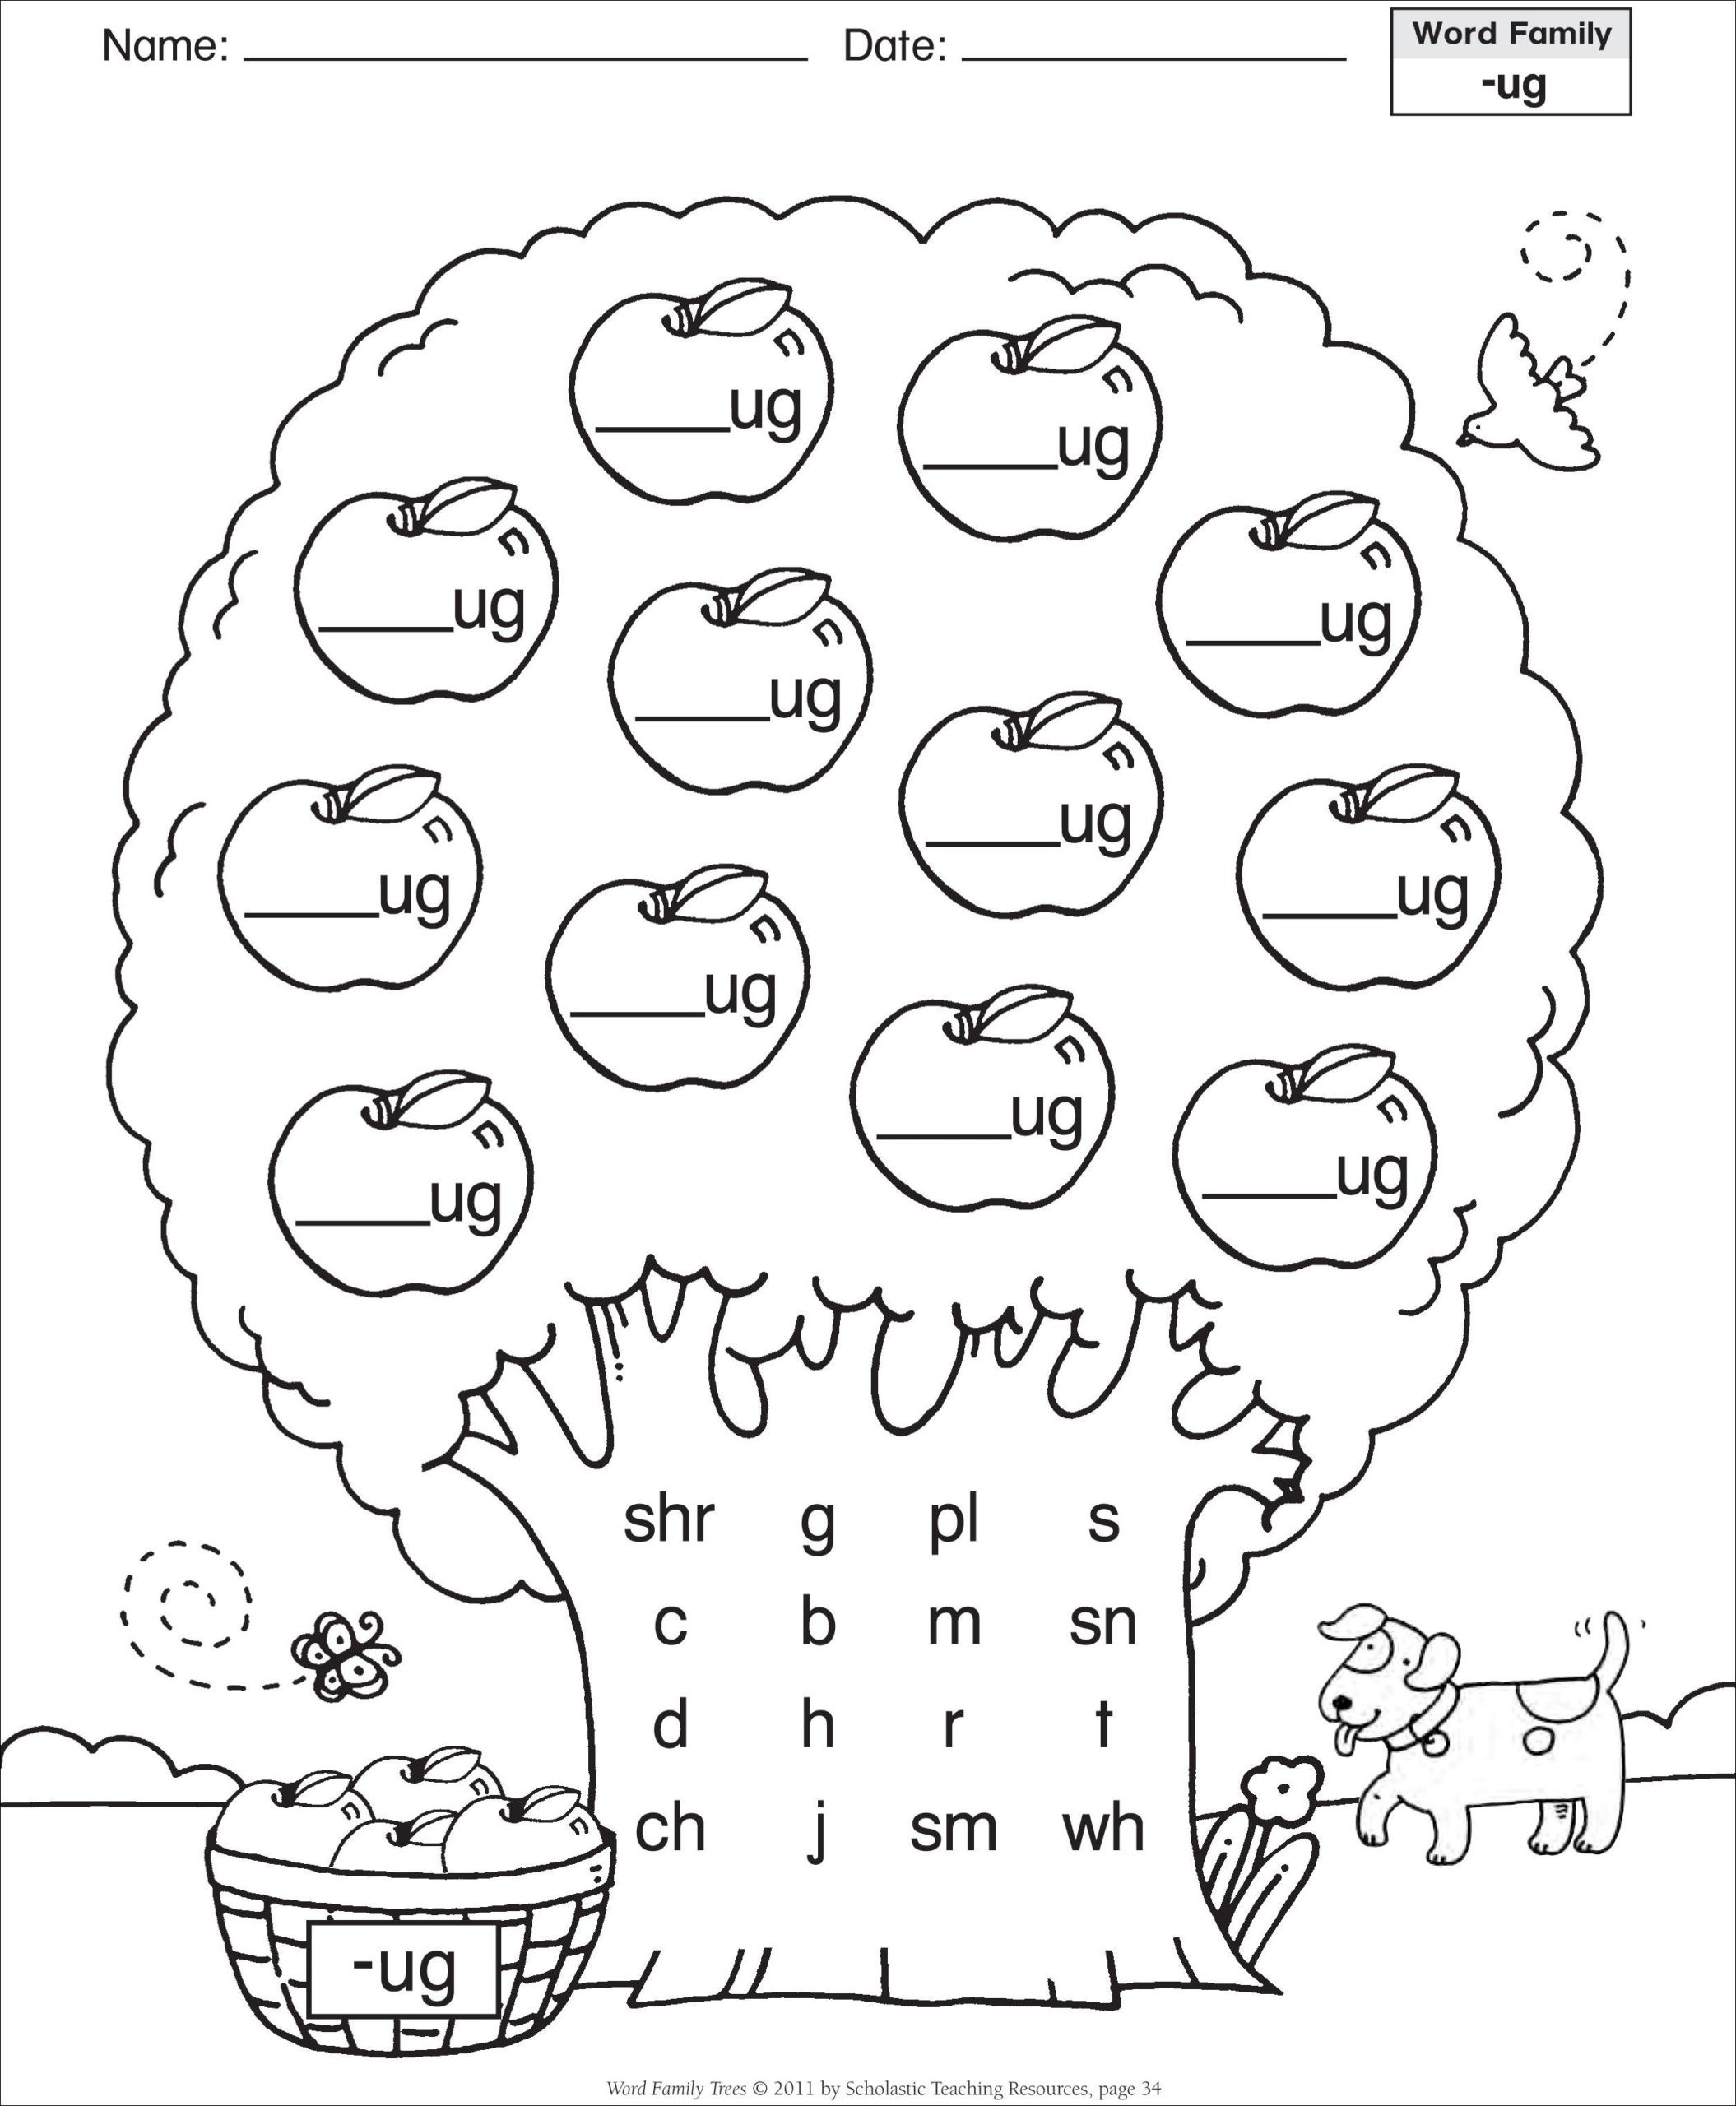 Cvc Worksheets for First Grade Short Vowel Ug Word Family Tree Families Reading Cvc Words